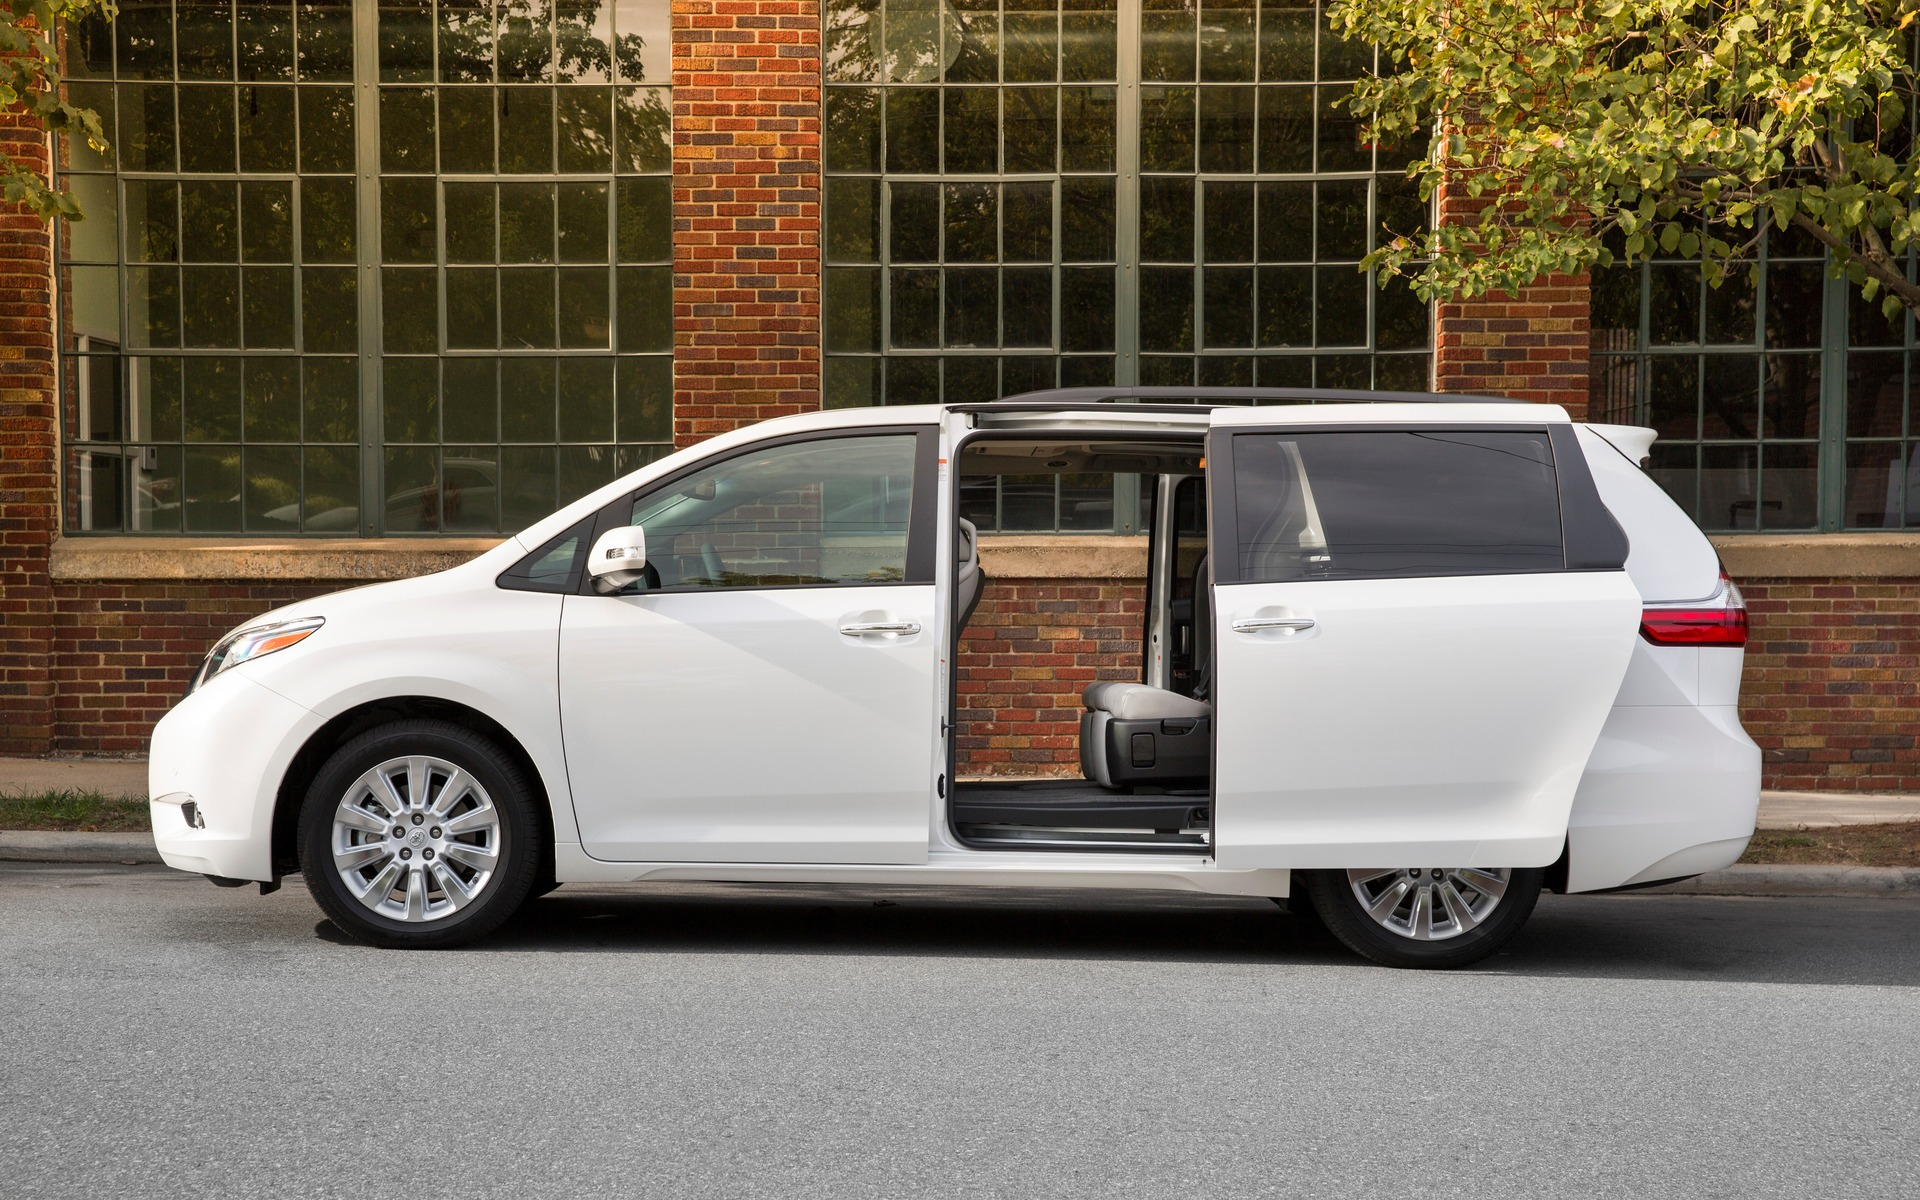 A Recall For The Toyota Sienna And Its Power Sliding Doors